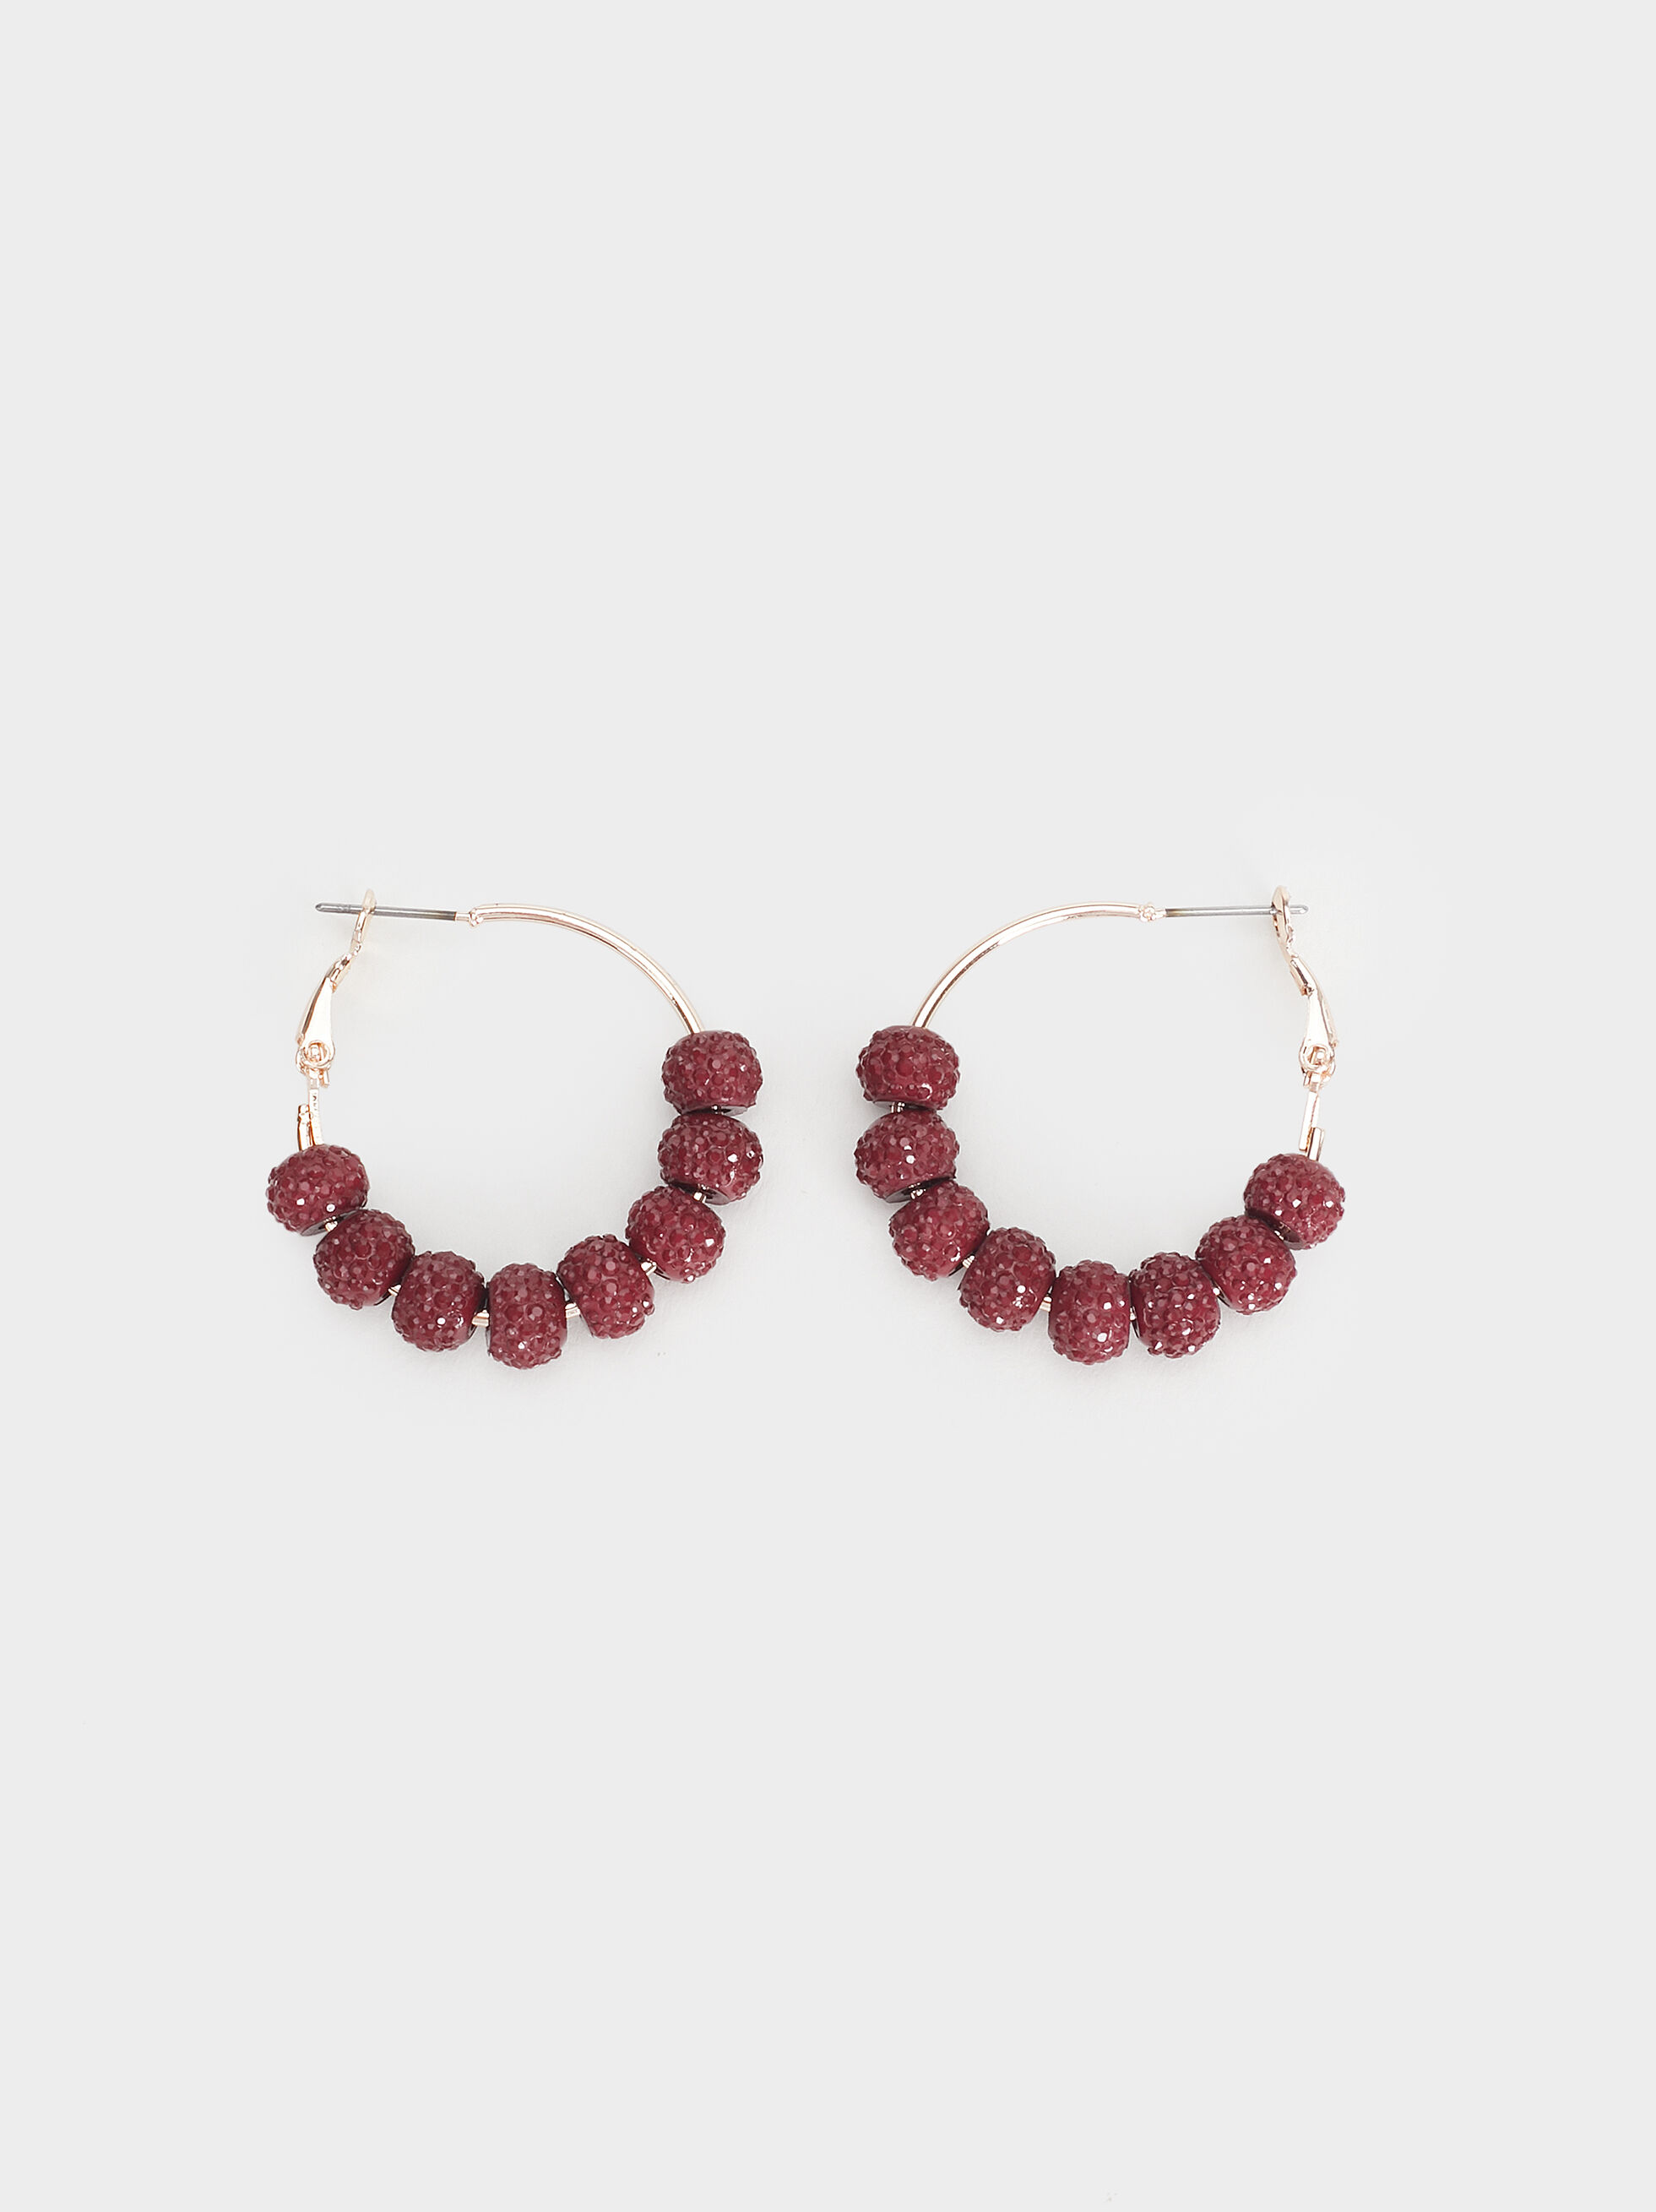 Rose Berry Medium Hoop Earrings, Bordeaux, hi-res